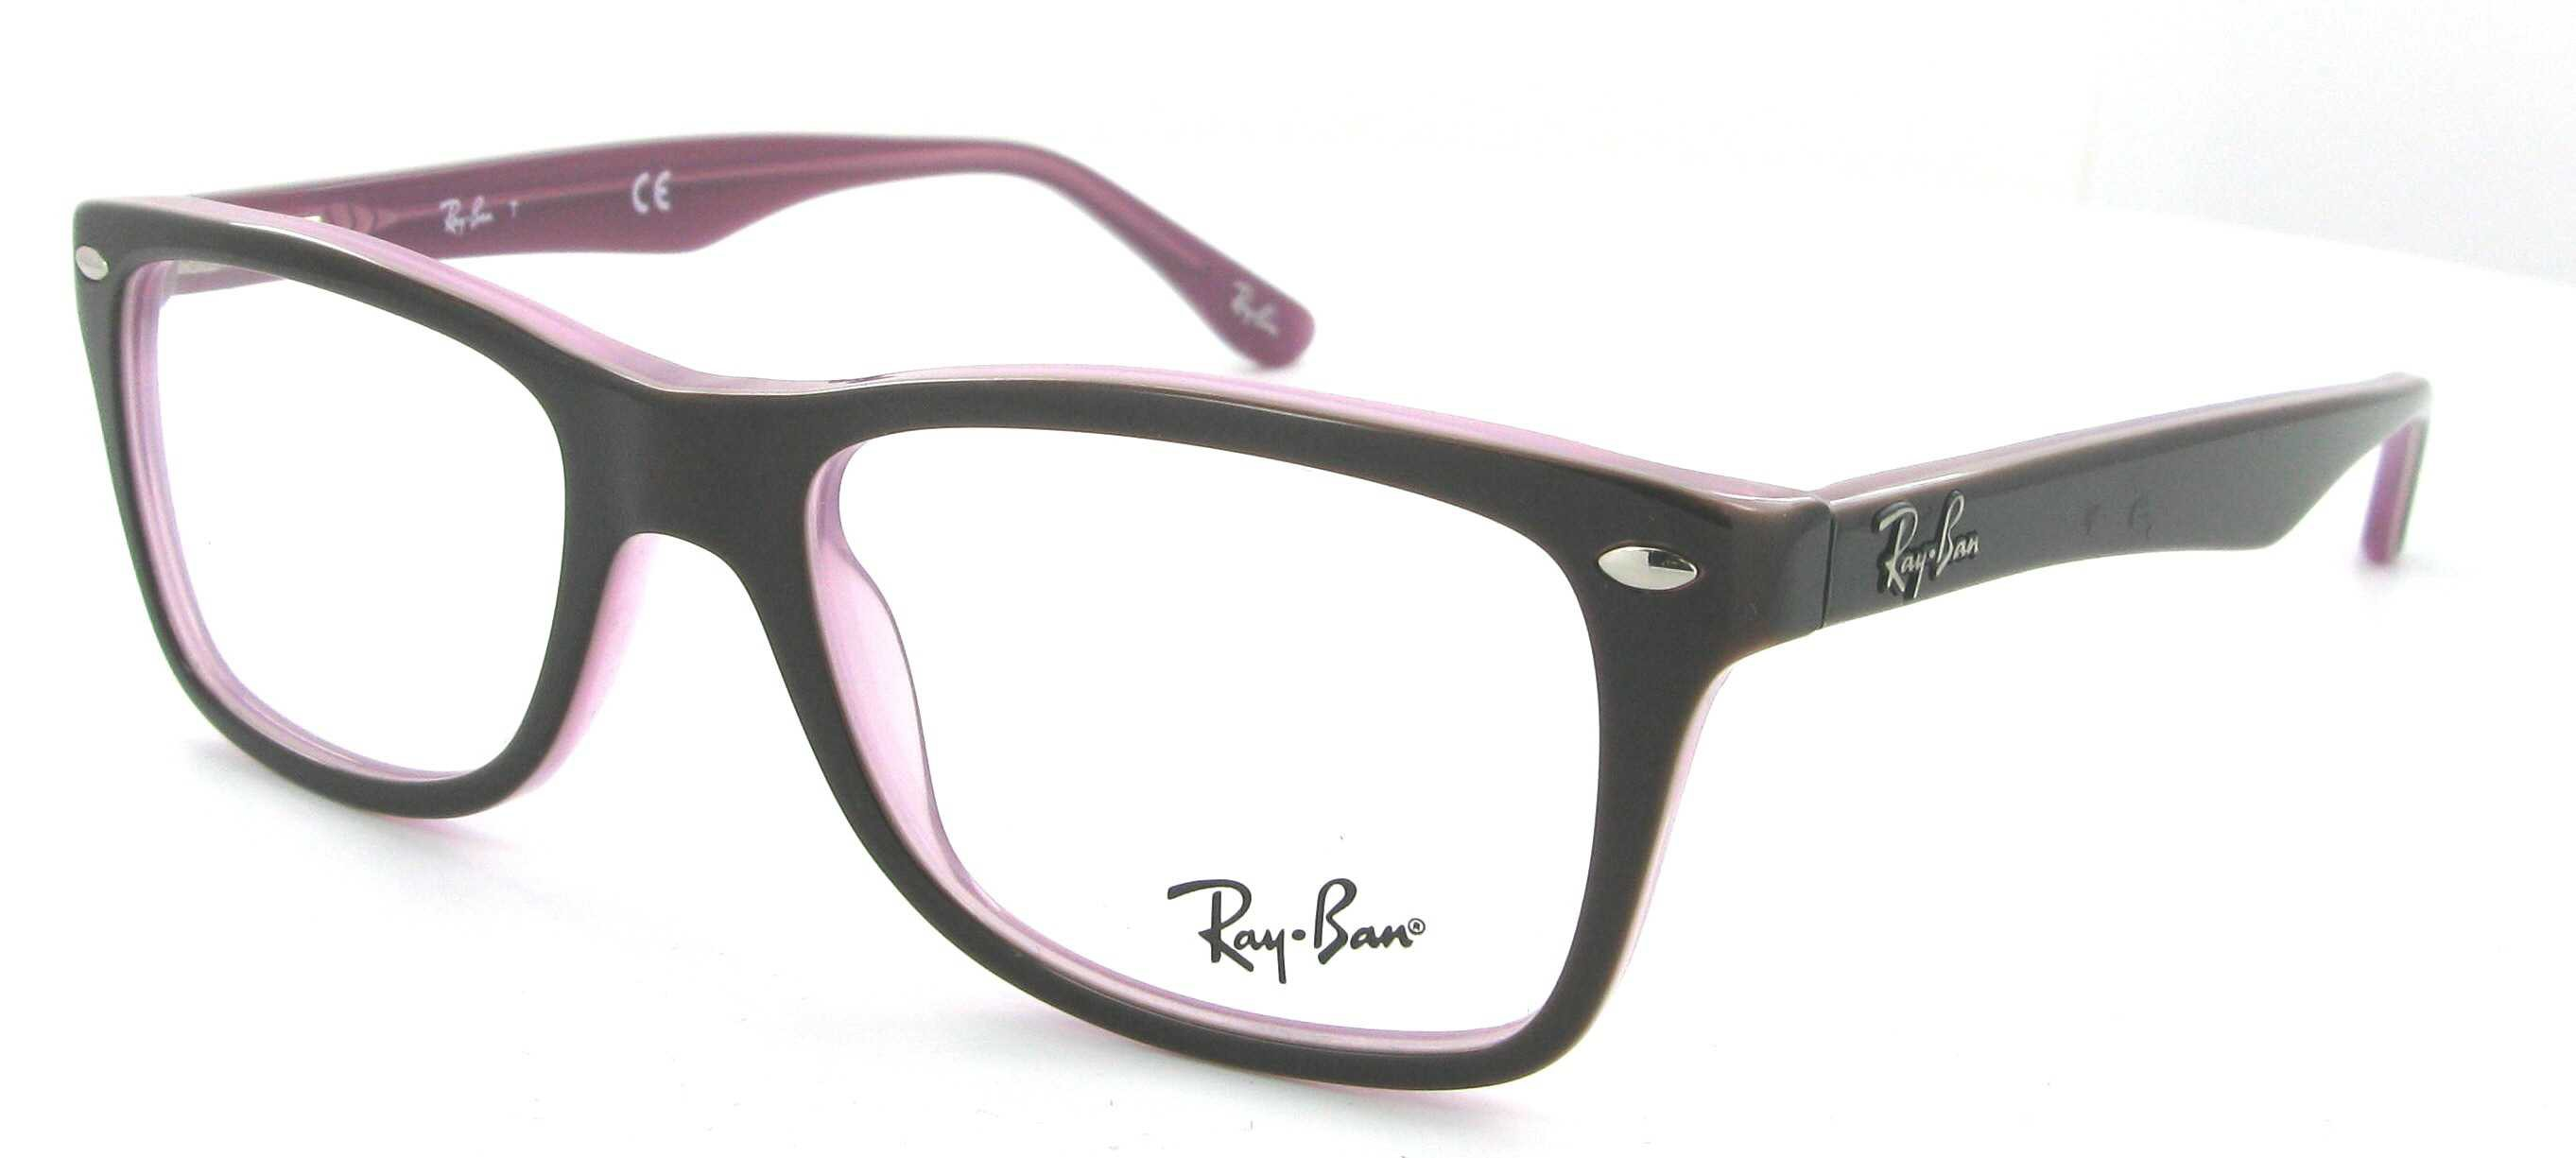 monture ray ban homme pas cher